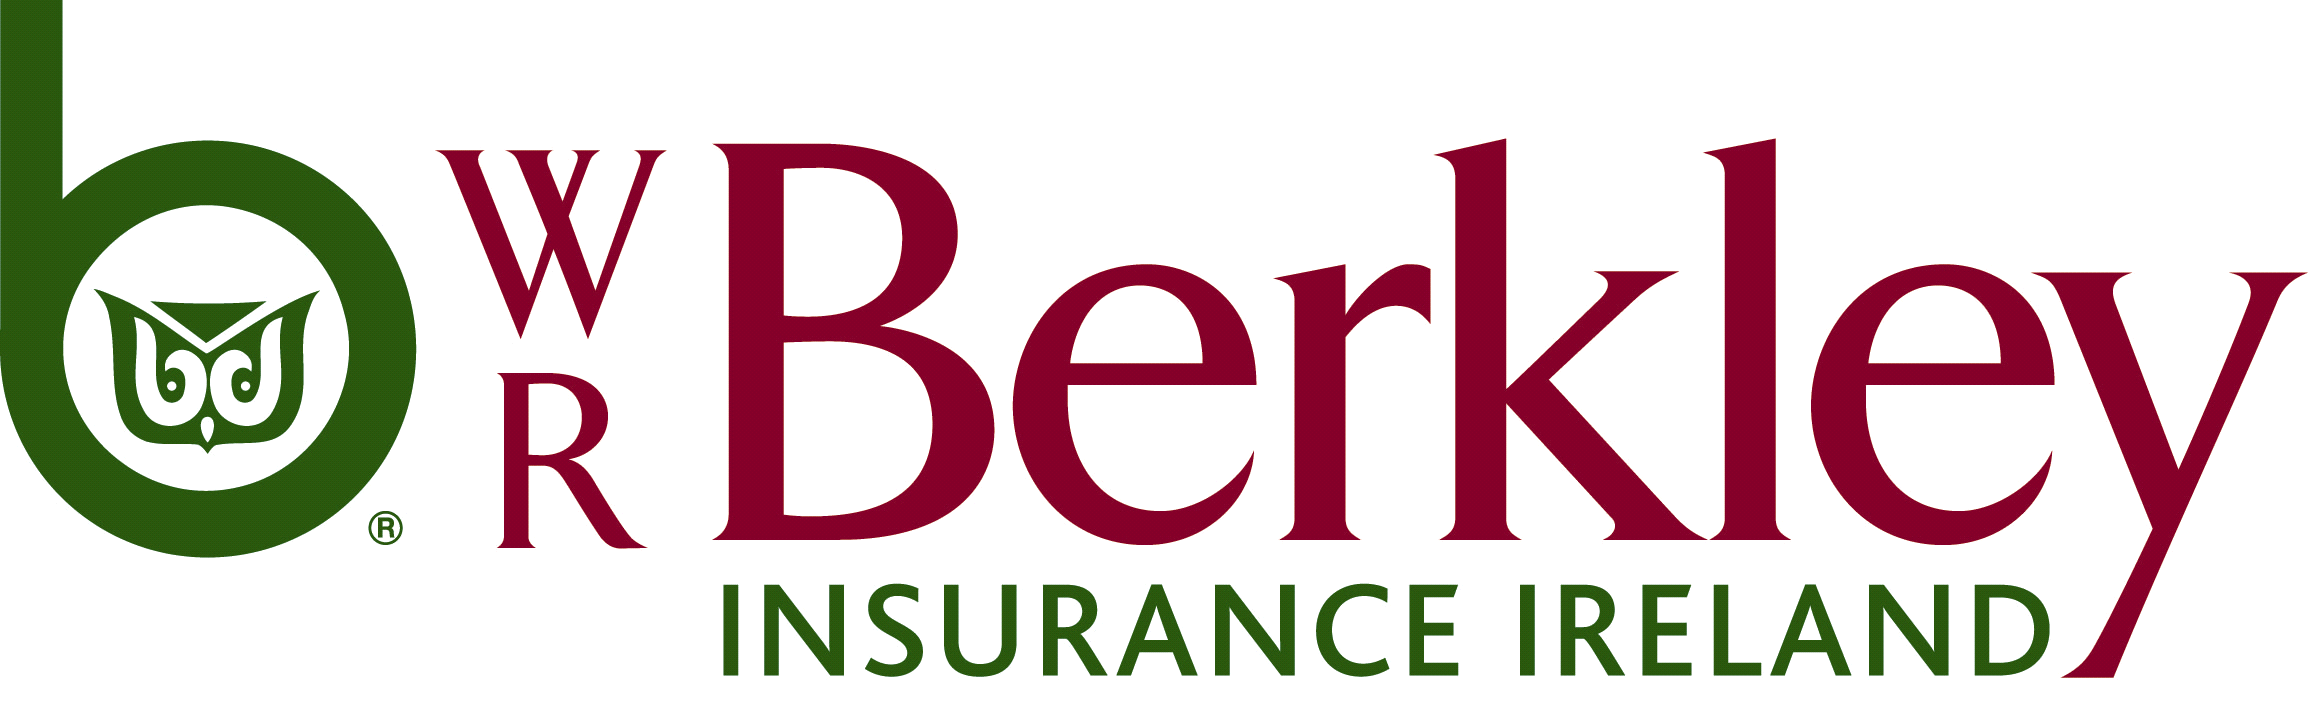 W.R. Berkley Insurance Ireland ARCHITECTS PROFESSIONAL INDEMNITY PROPOSAL FORM IMPORTANT NOTICE TO THE PROPOSER TO COMPLETION OF THIS PROPOSAL FORM 1) Disclosure - Any material fact must be disclosed